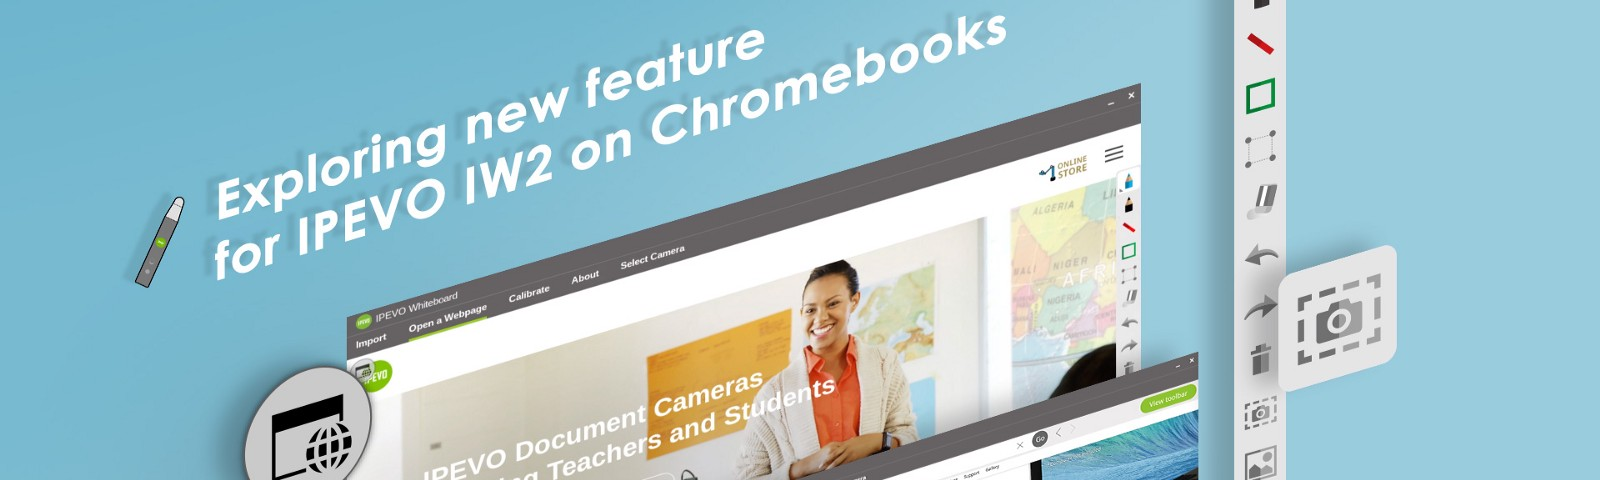 Exploring new feature for IPEVO IW2 on Chromebooks—Load and annotate on webpages